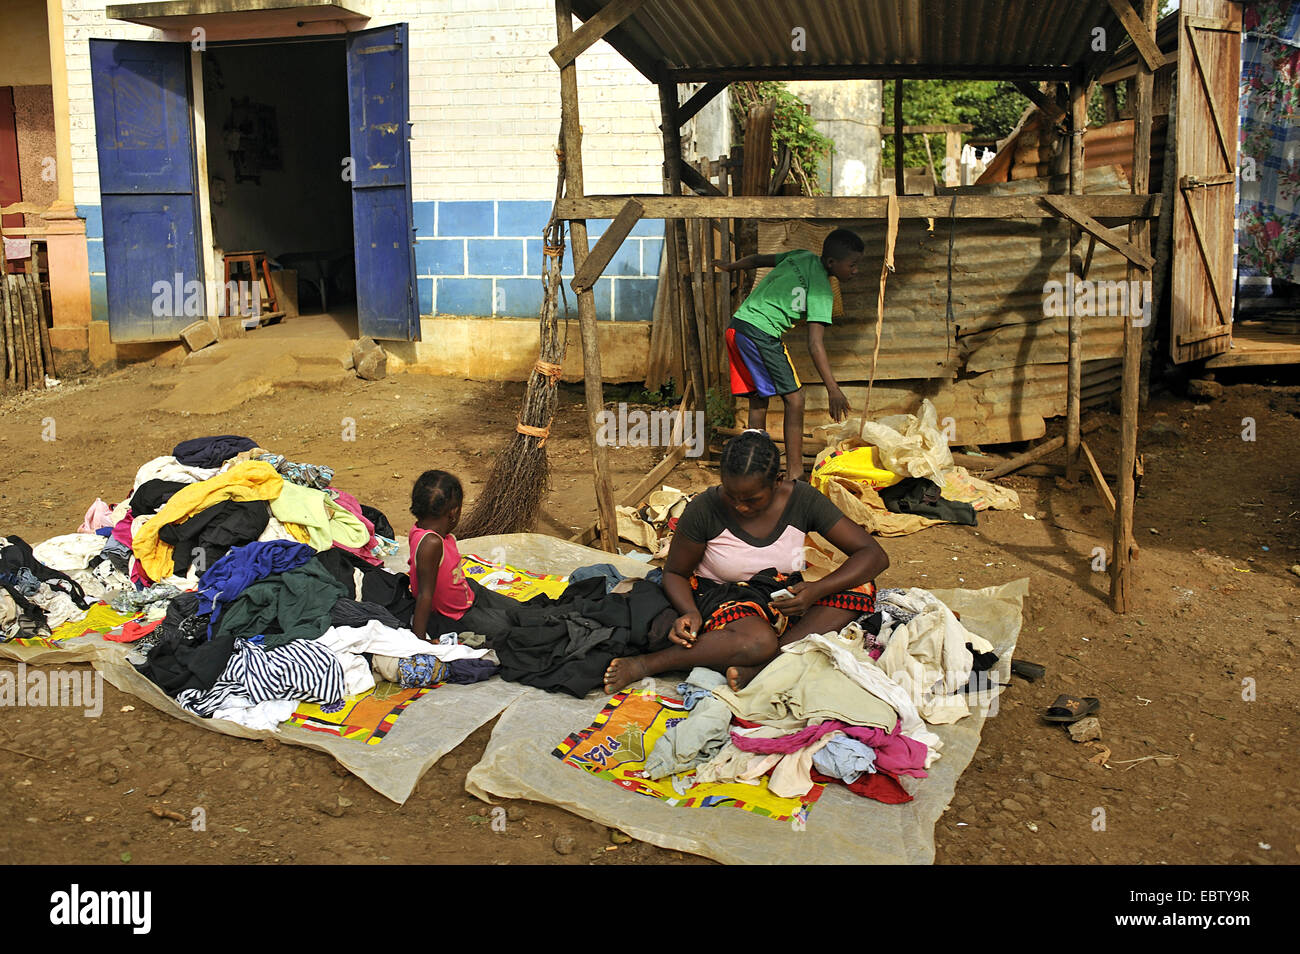 saleswoman selling clothes, Madagascar, Ambilove - Stock Image